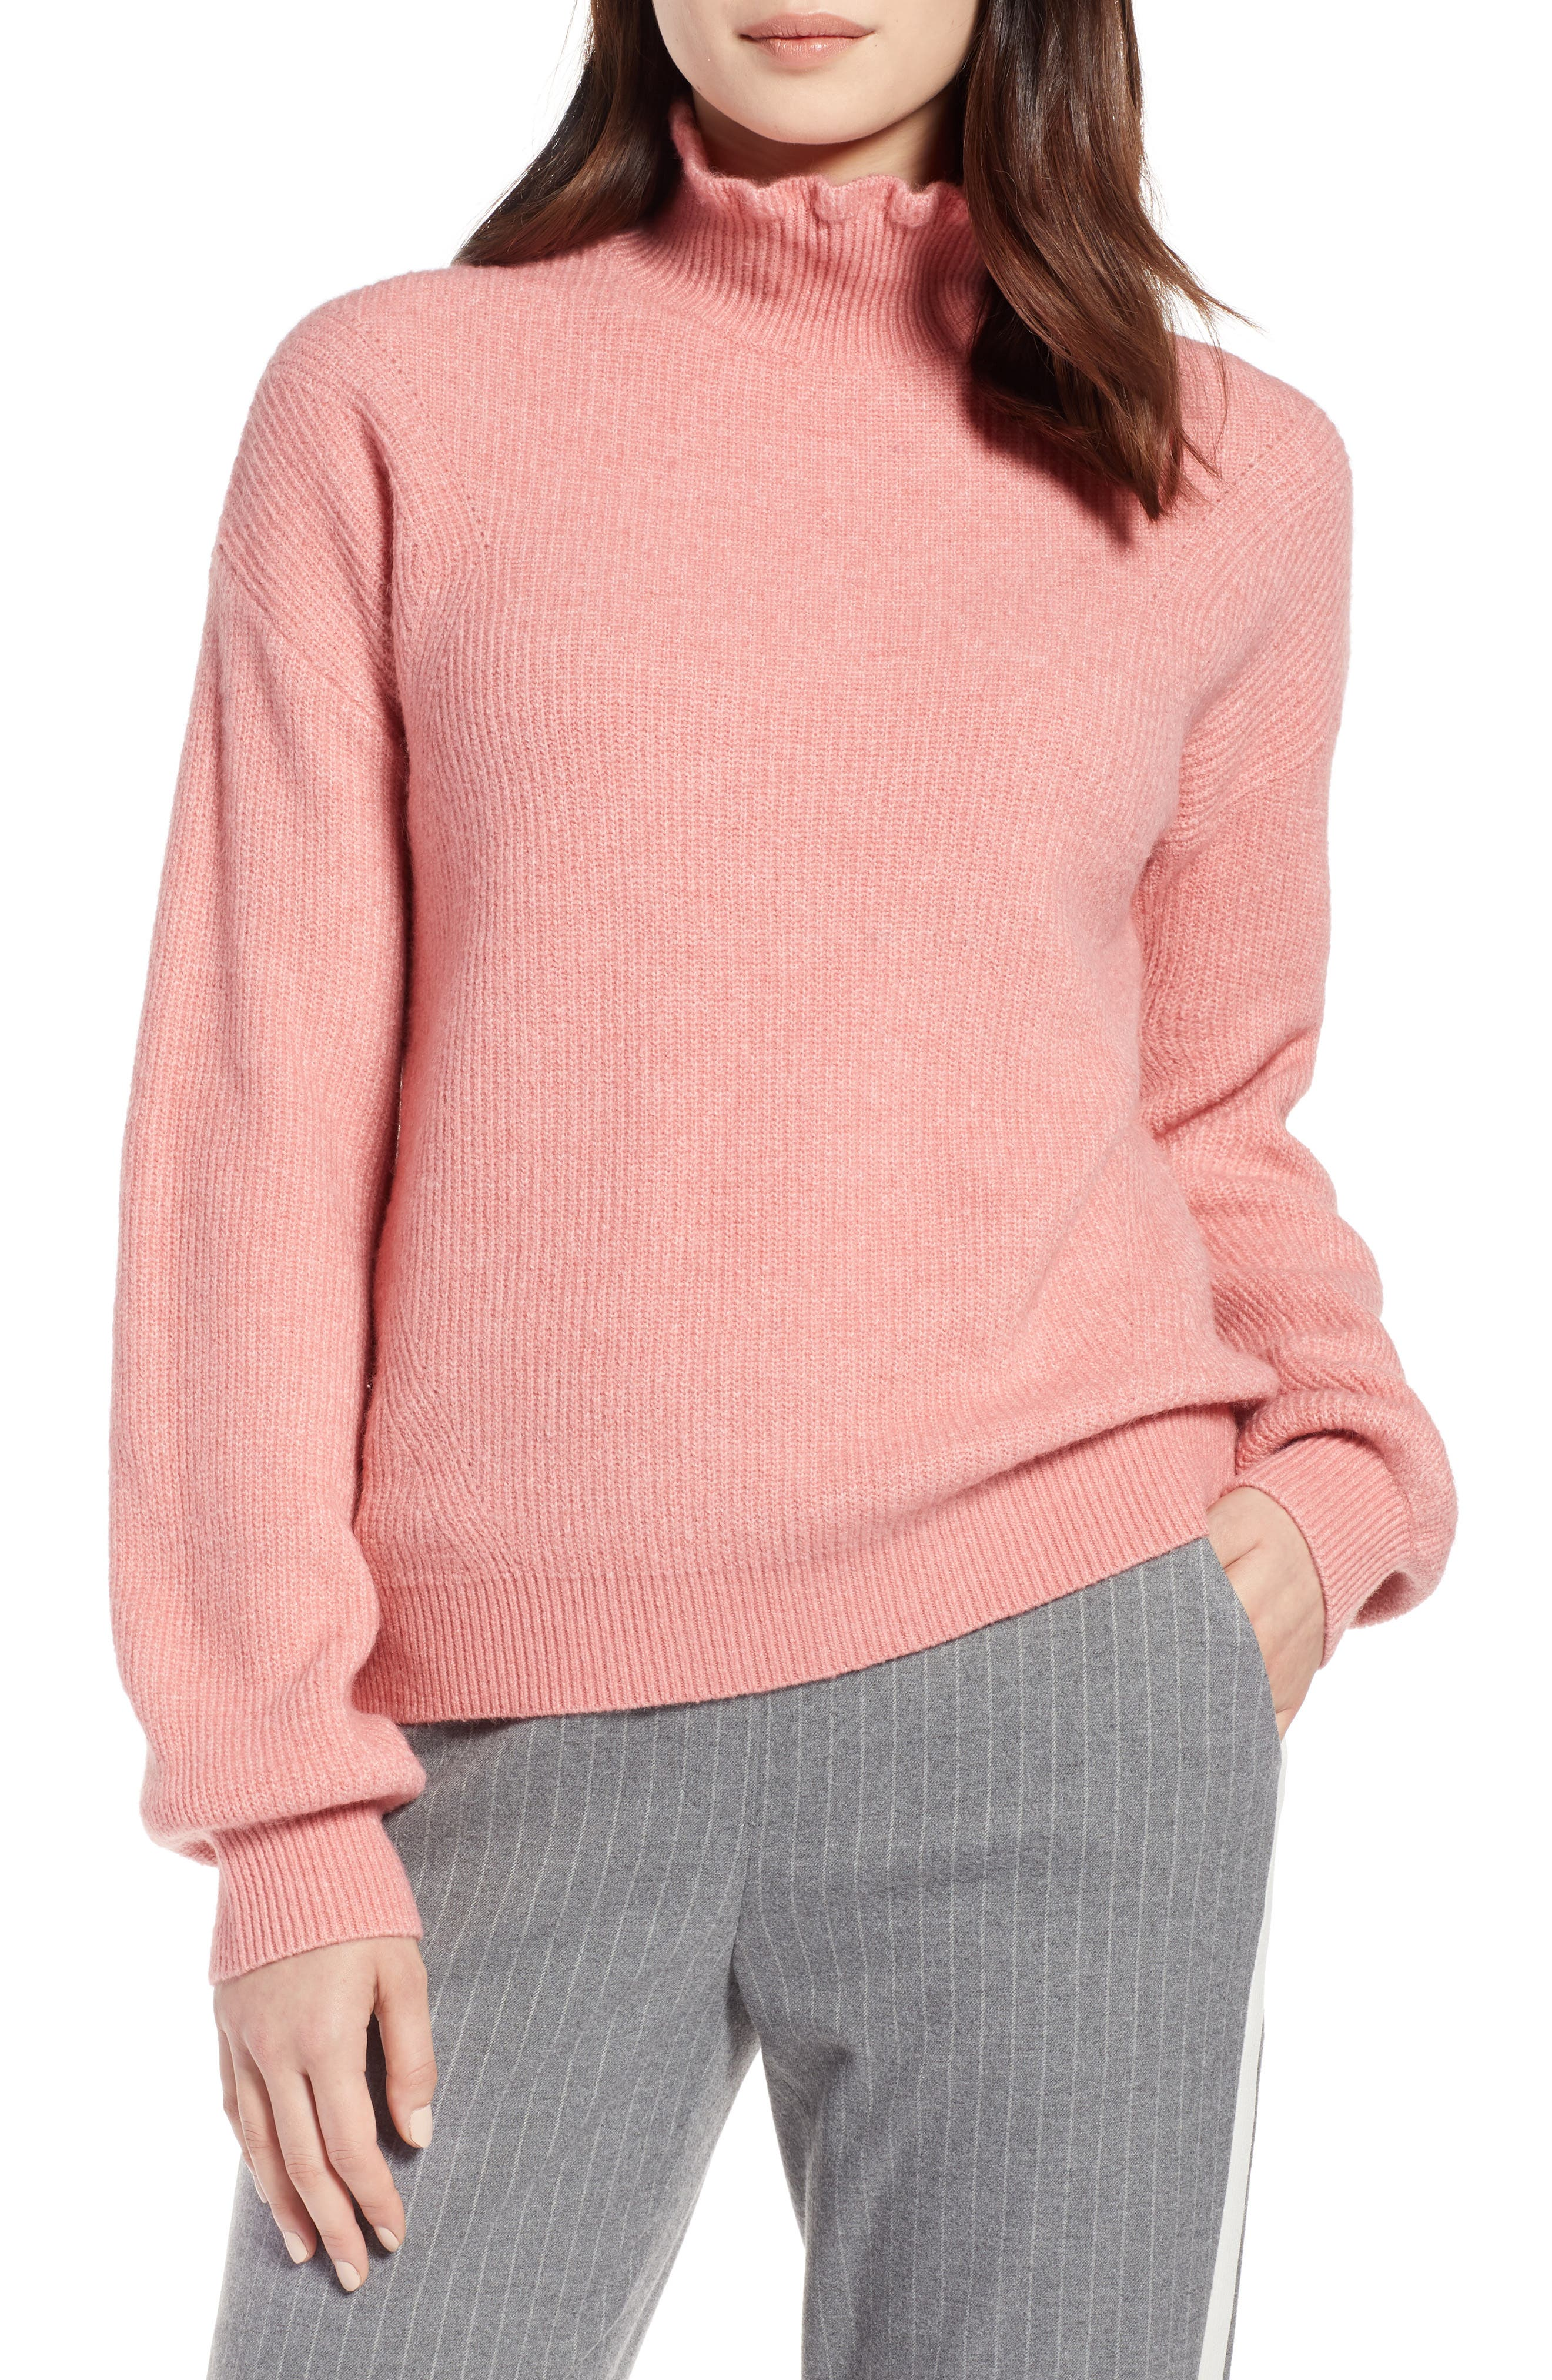 Ruffle Neck Sweater,                         Main,                         color, PINK APRICOT